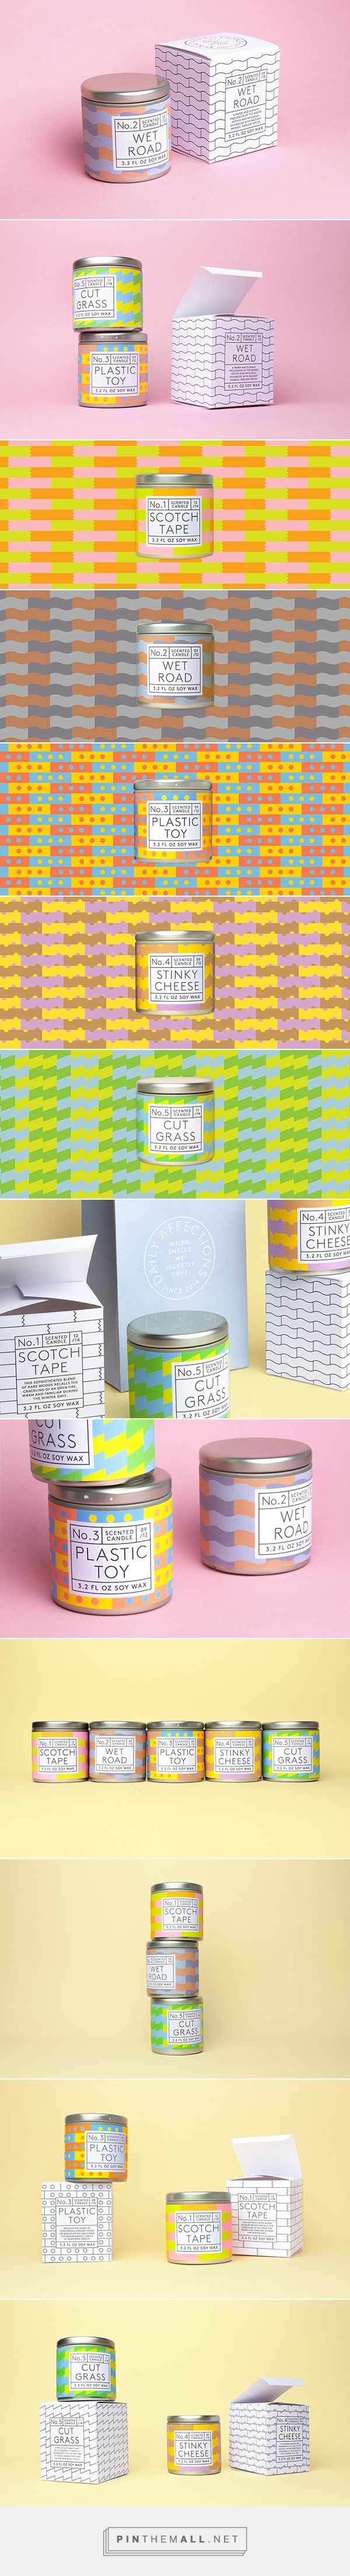 Daily Affections candles by Albert J. Son. Pin curated by SFields99. #packaging